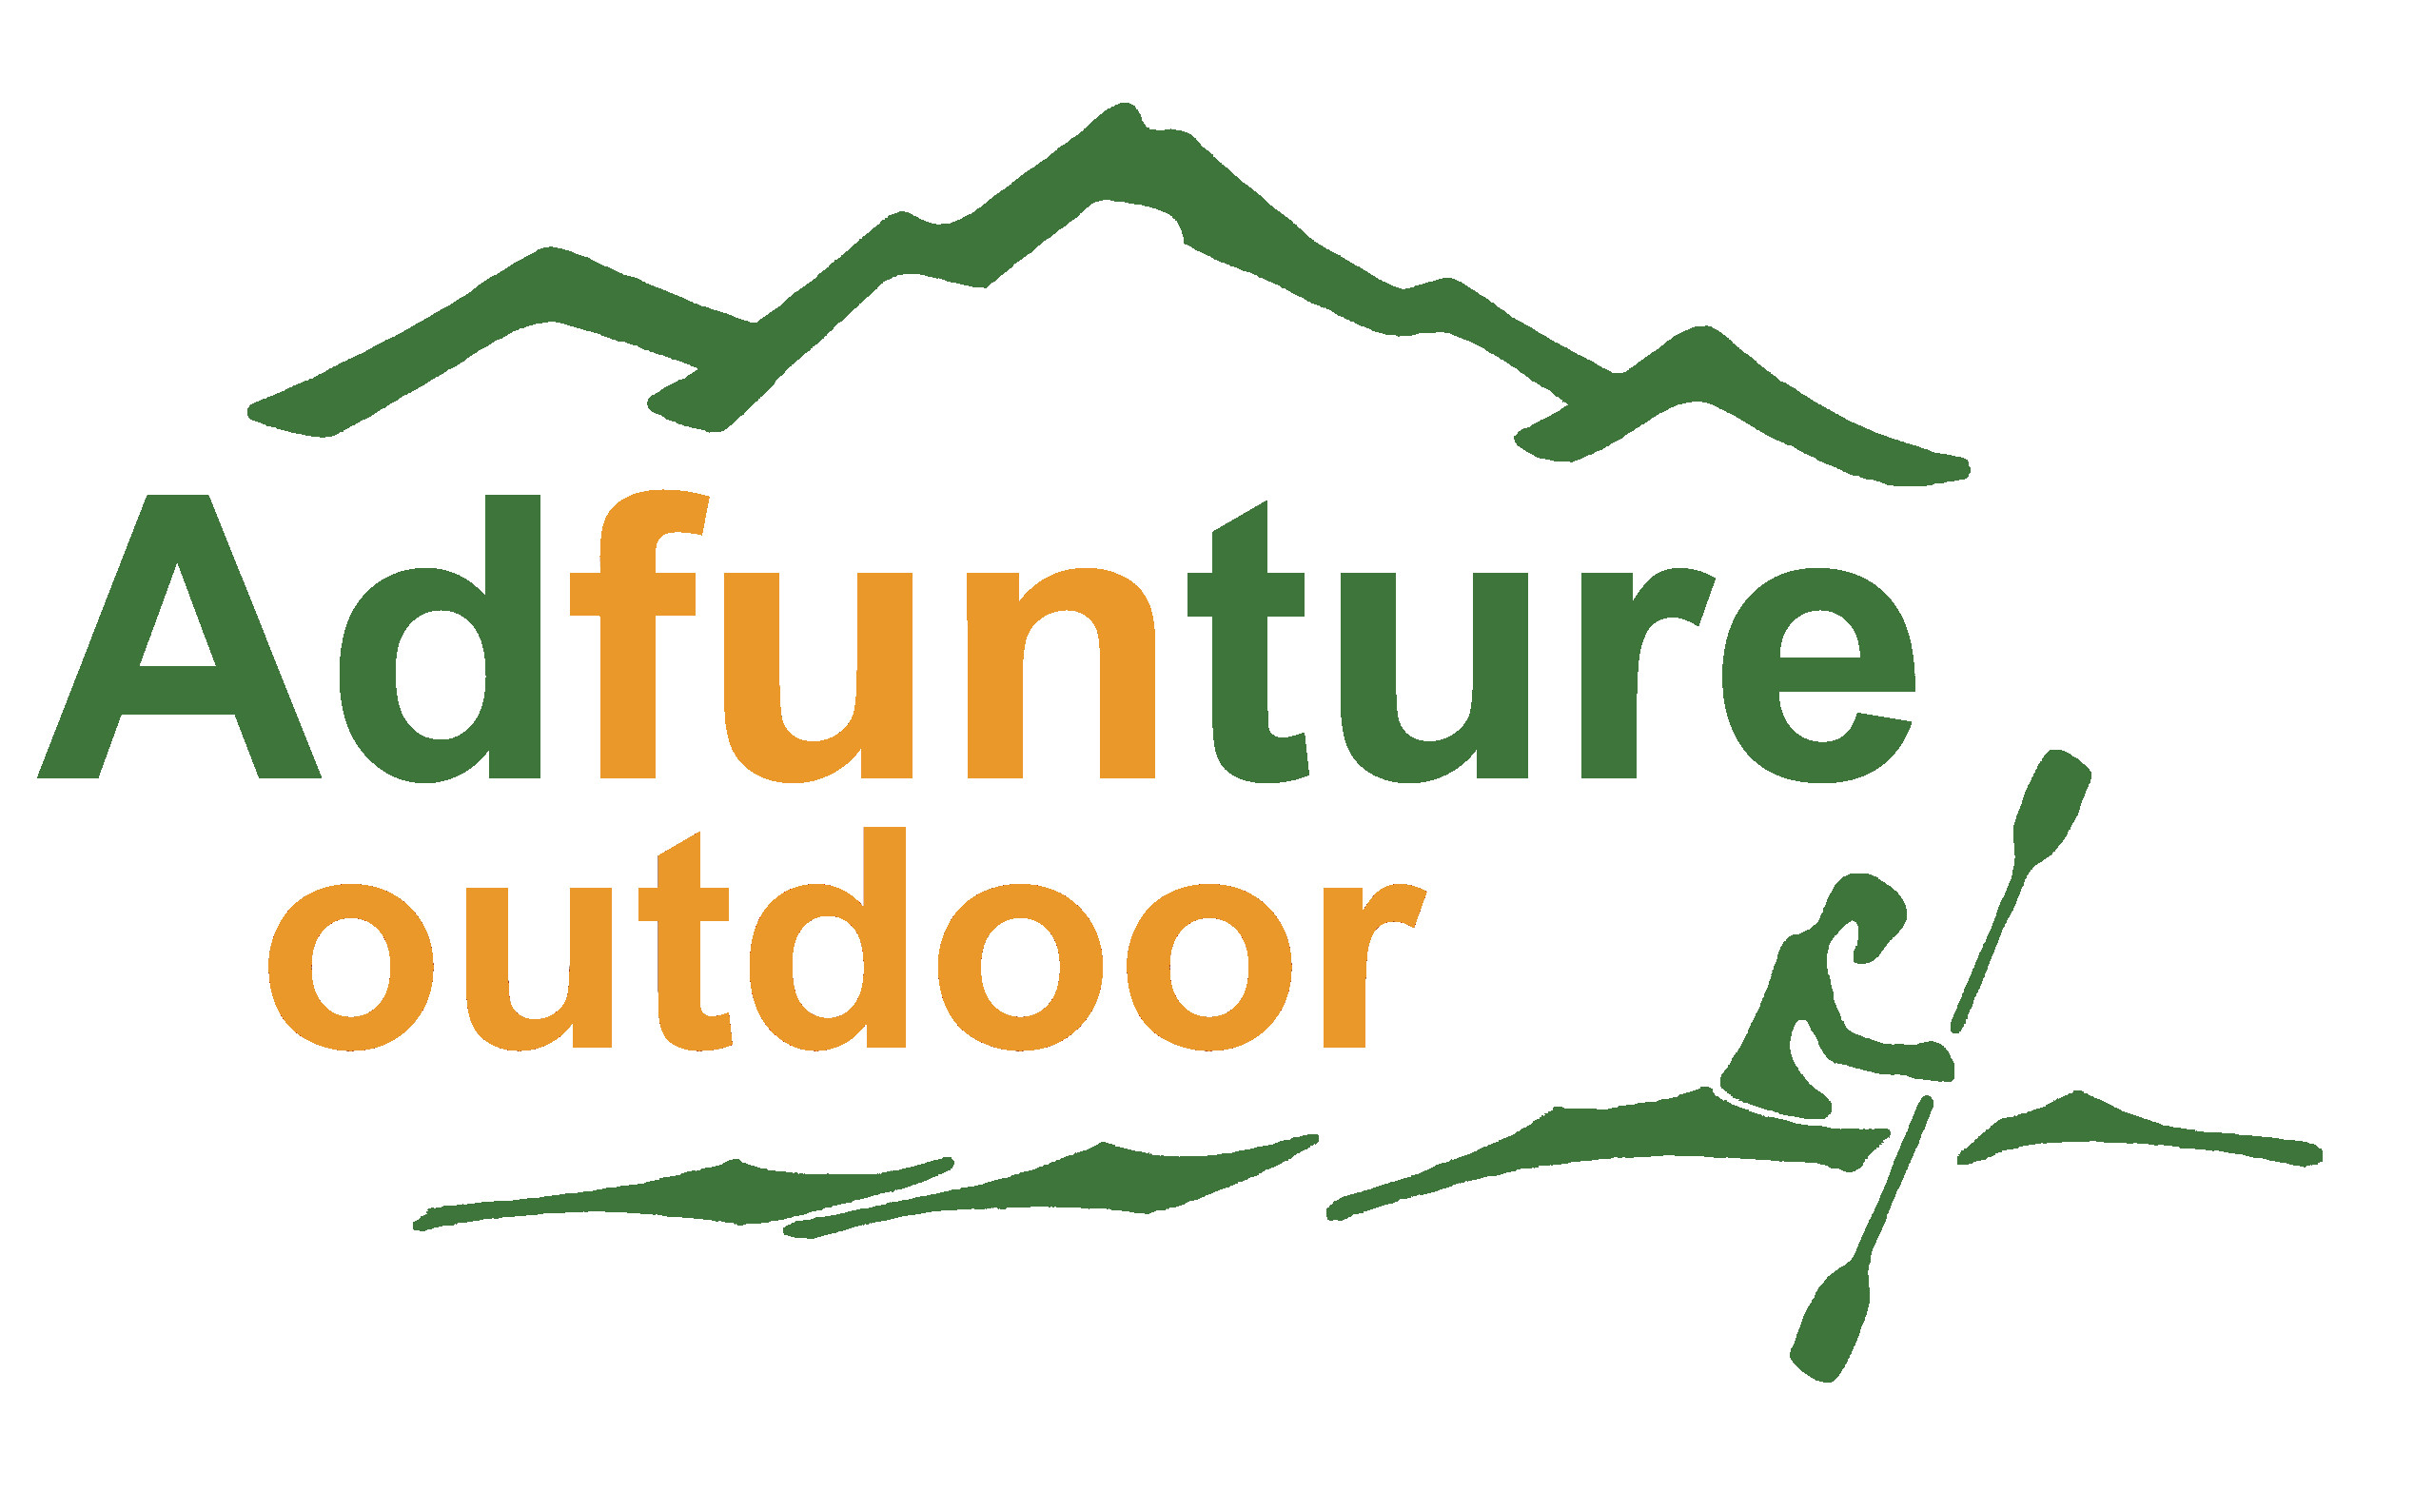 Adfunture_Outdoor_Logo